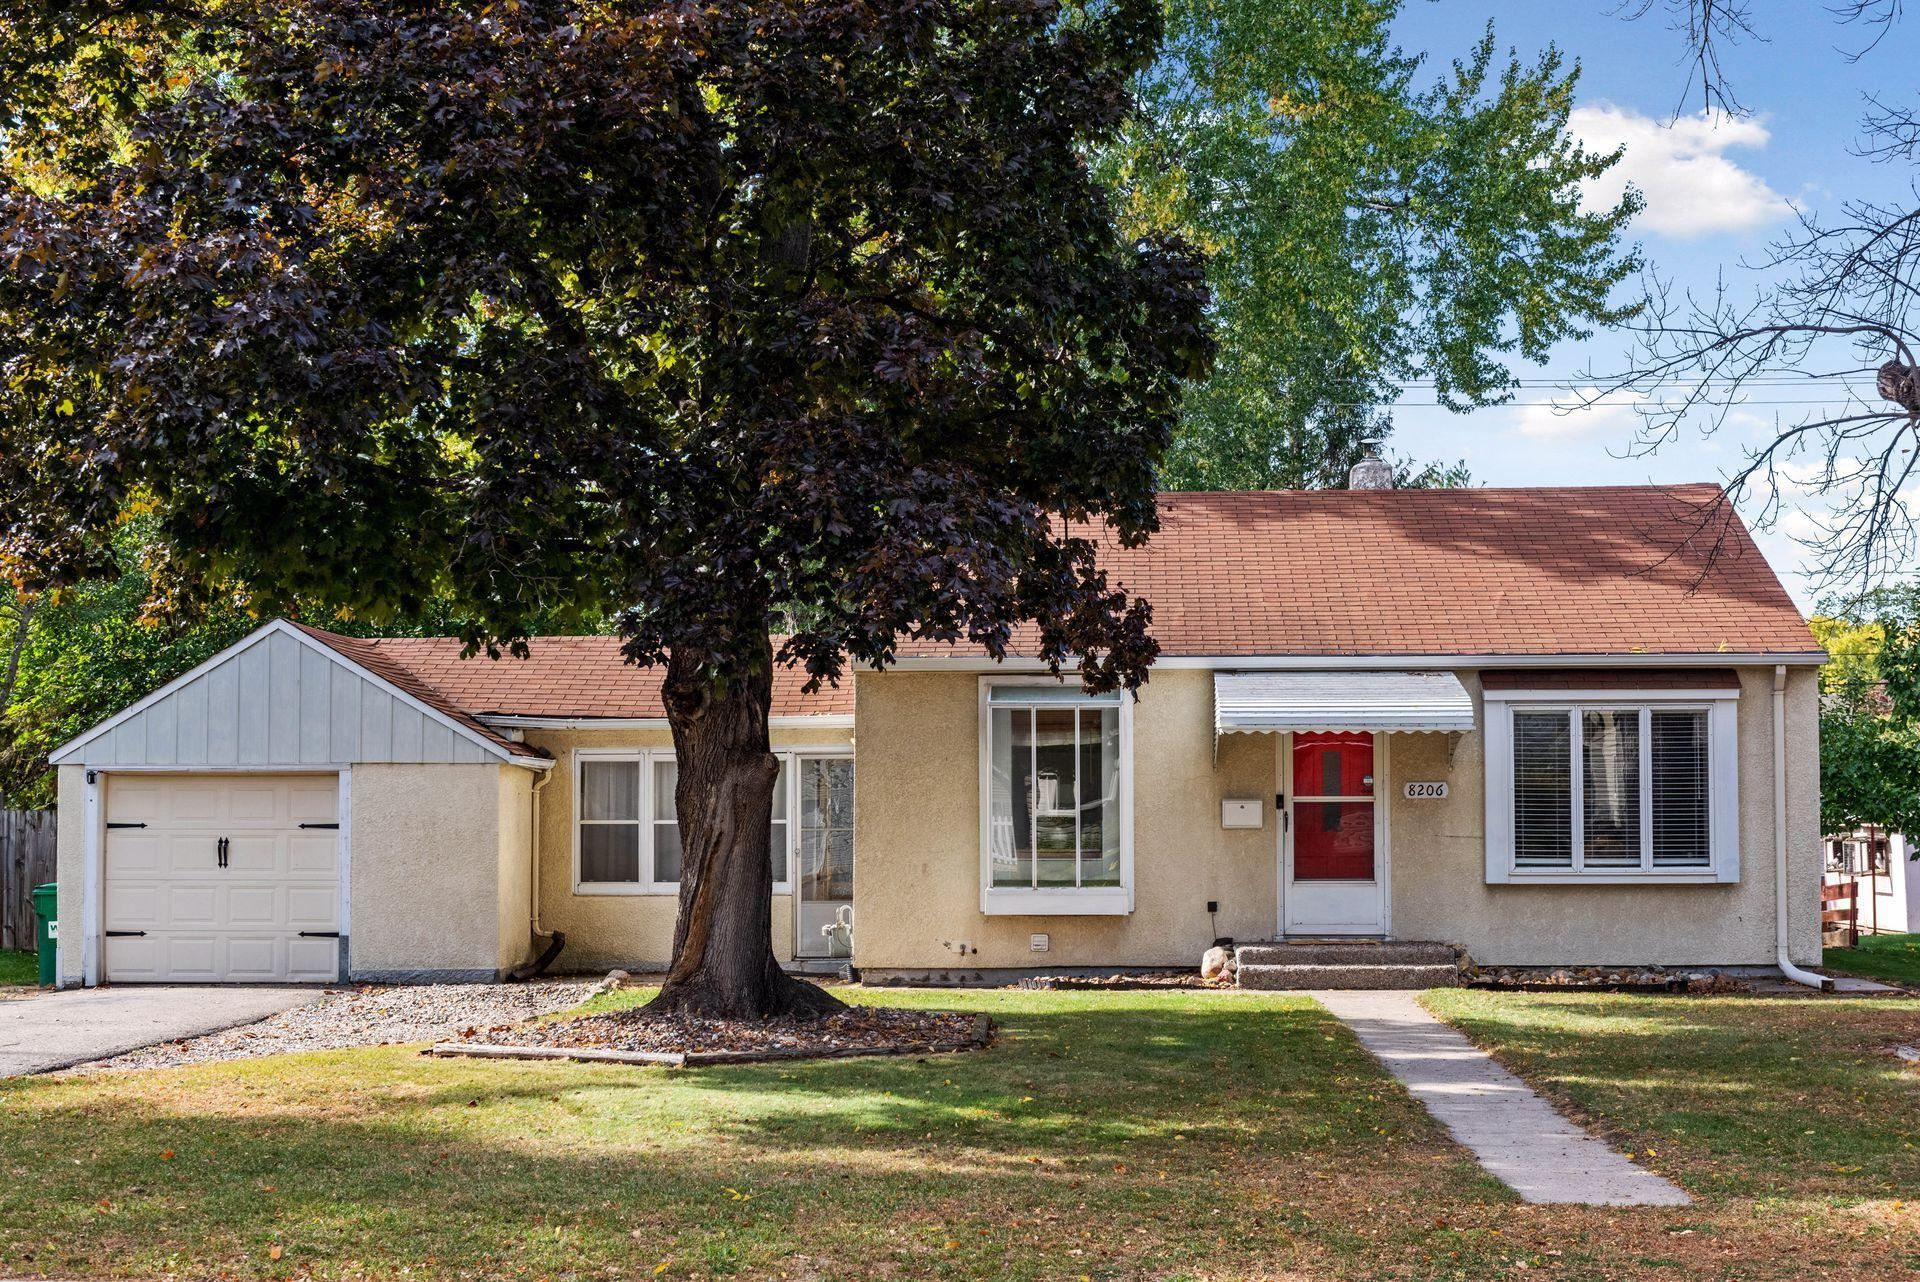 Photo of 8206 2nd Avenue S, Bloomington, MN 55420 (MLS # 6115878)